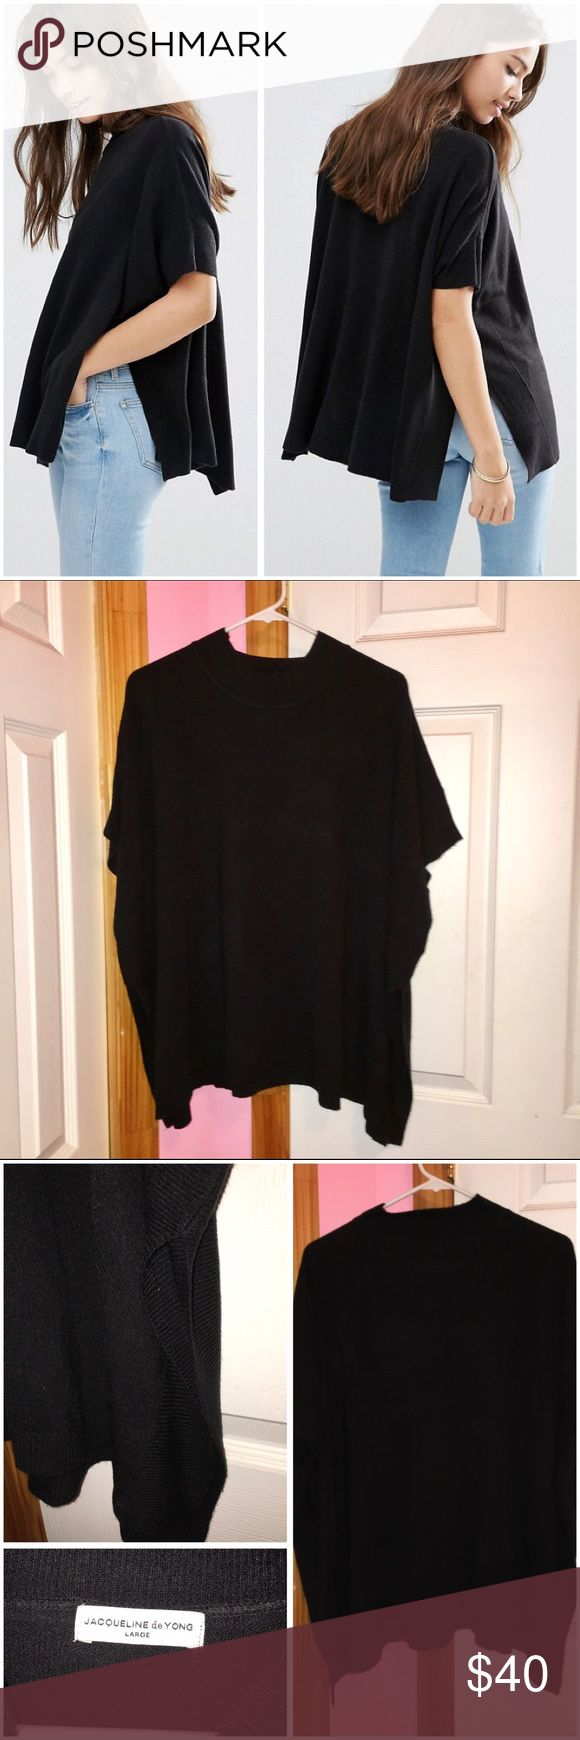 17 Best Ideas About High Neck Top On Pinterest Blouses